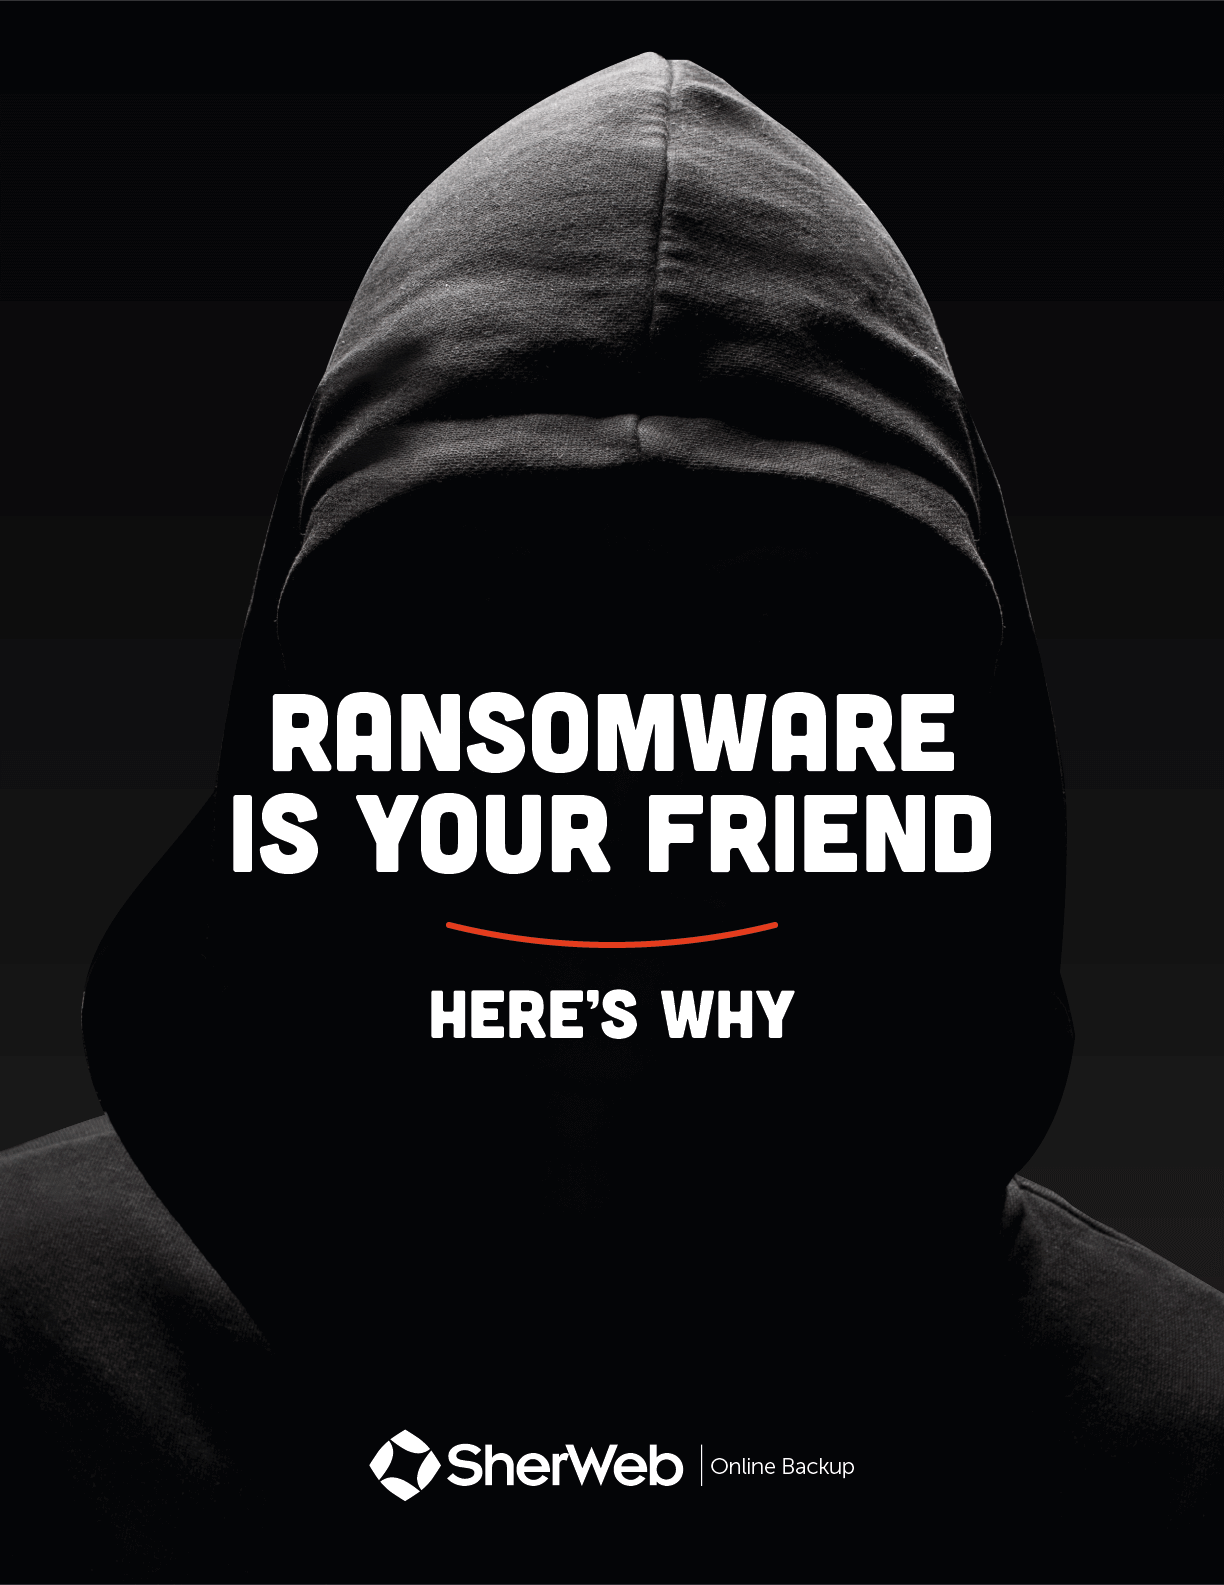 No business is immune to cyber attacks like ransomware